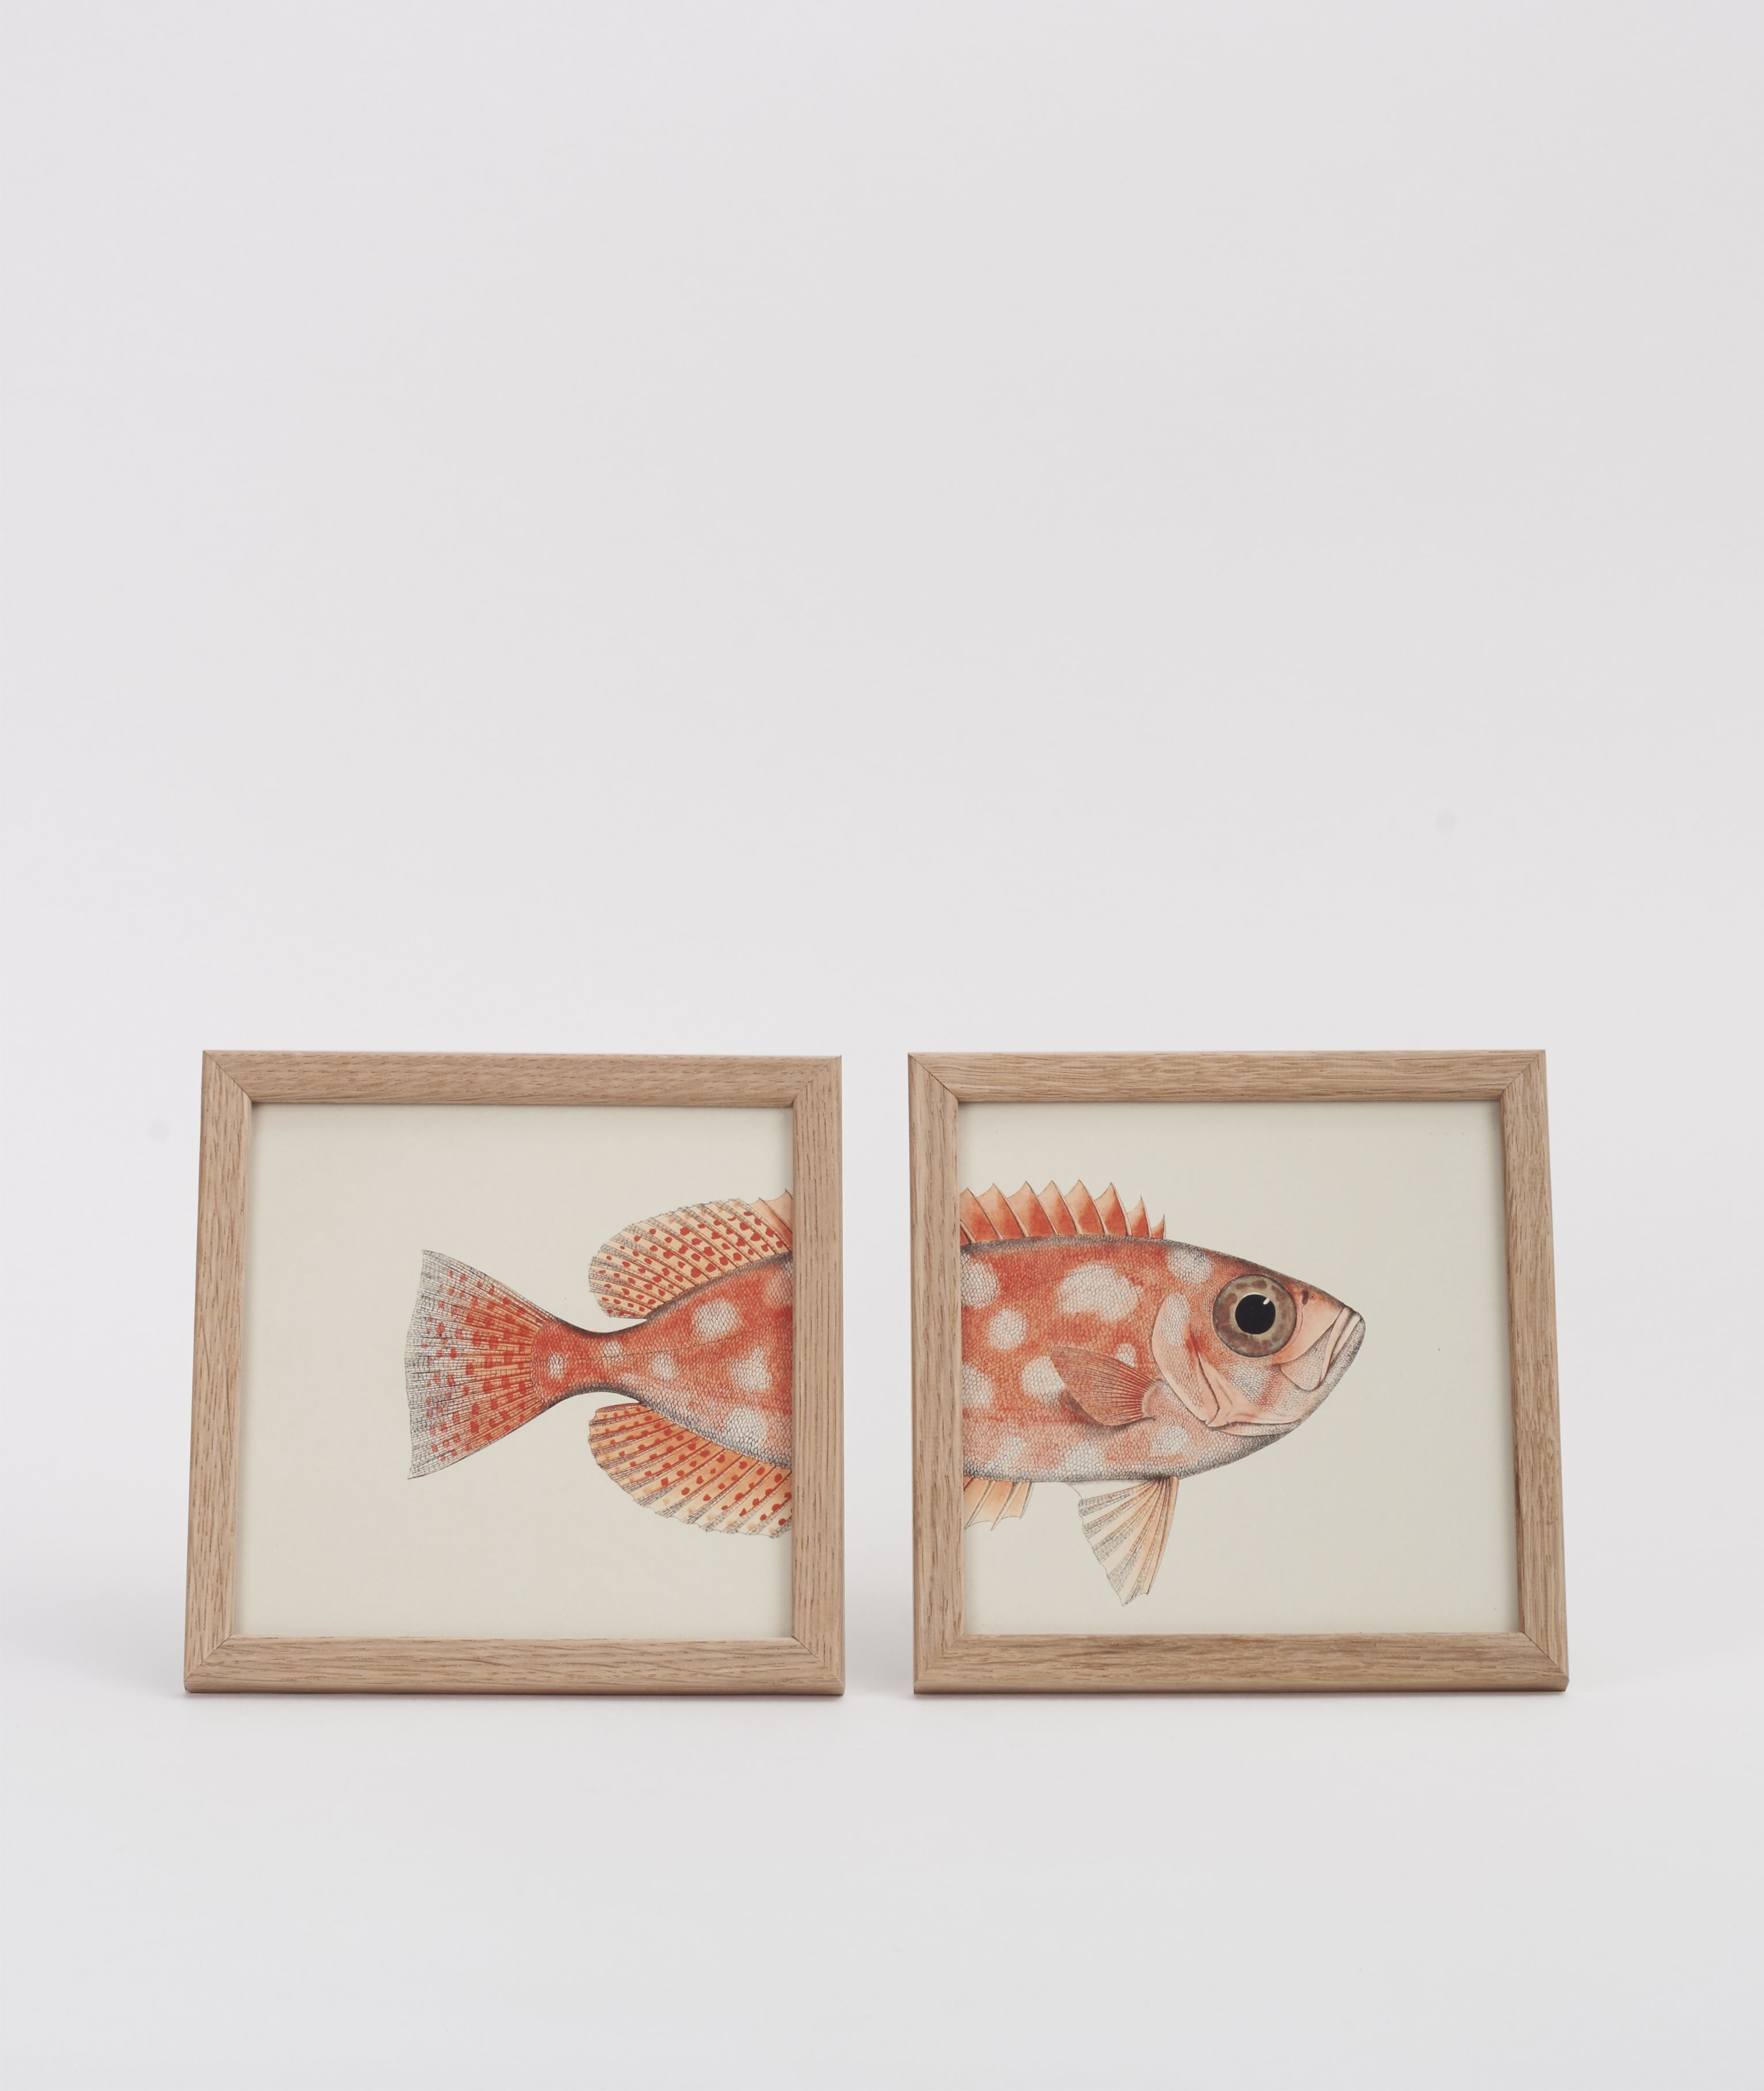 Set of Two Orange Fish Prints: This print is made by designer andheritage adventurerHenrik Dybdahl.Henrik browses through hundreds of amazing collections at libraries, museums and archives around the world. When he uncovers interesting images he enhances and restores them to their former glory. This productfeatures two separate frames, one print displaying the back of the orange fish and the other the front. The prints can be hung or stood on a table. - Frames included -Original edited…